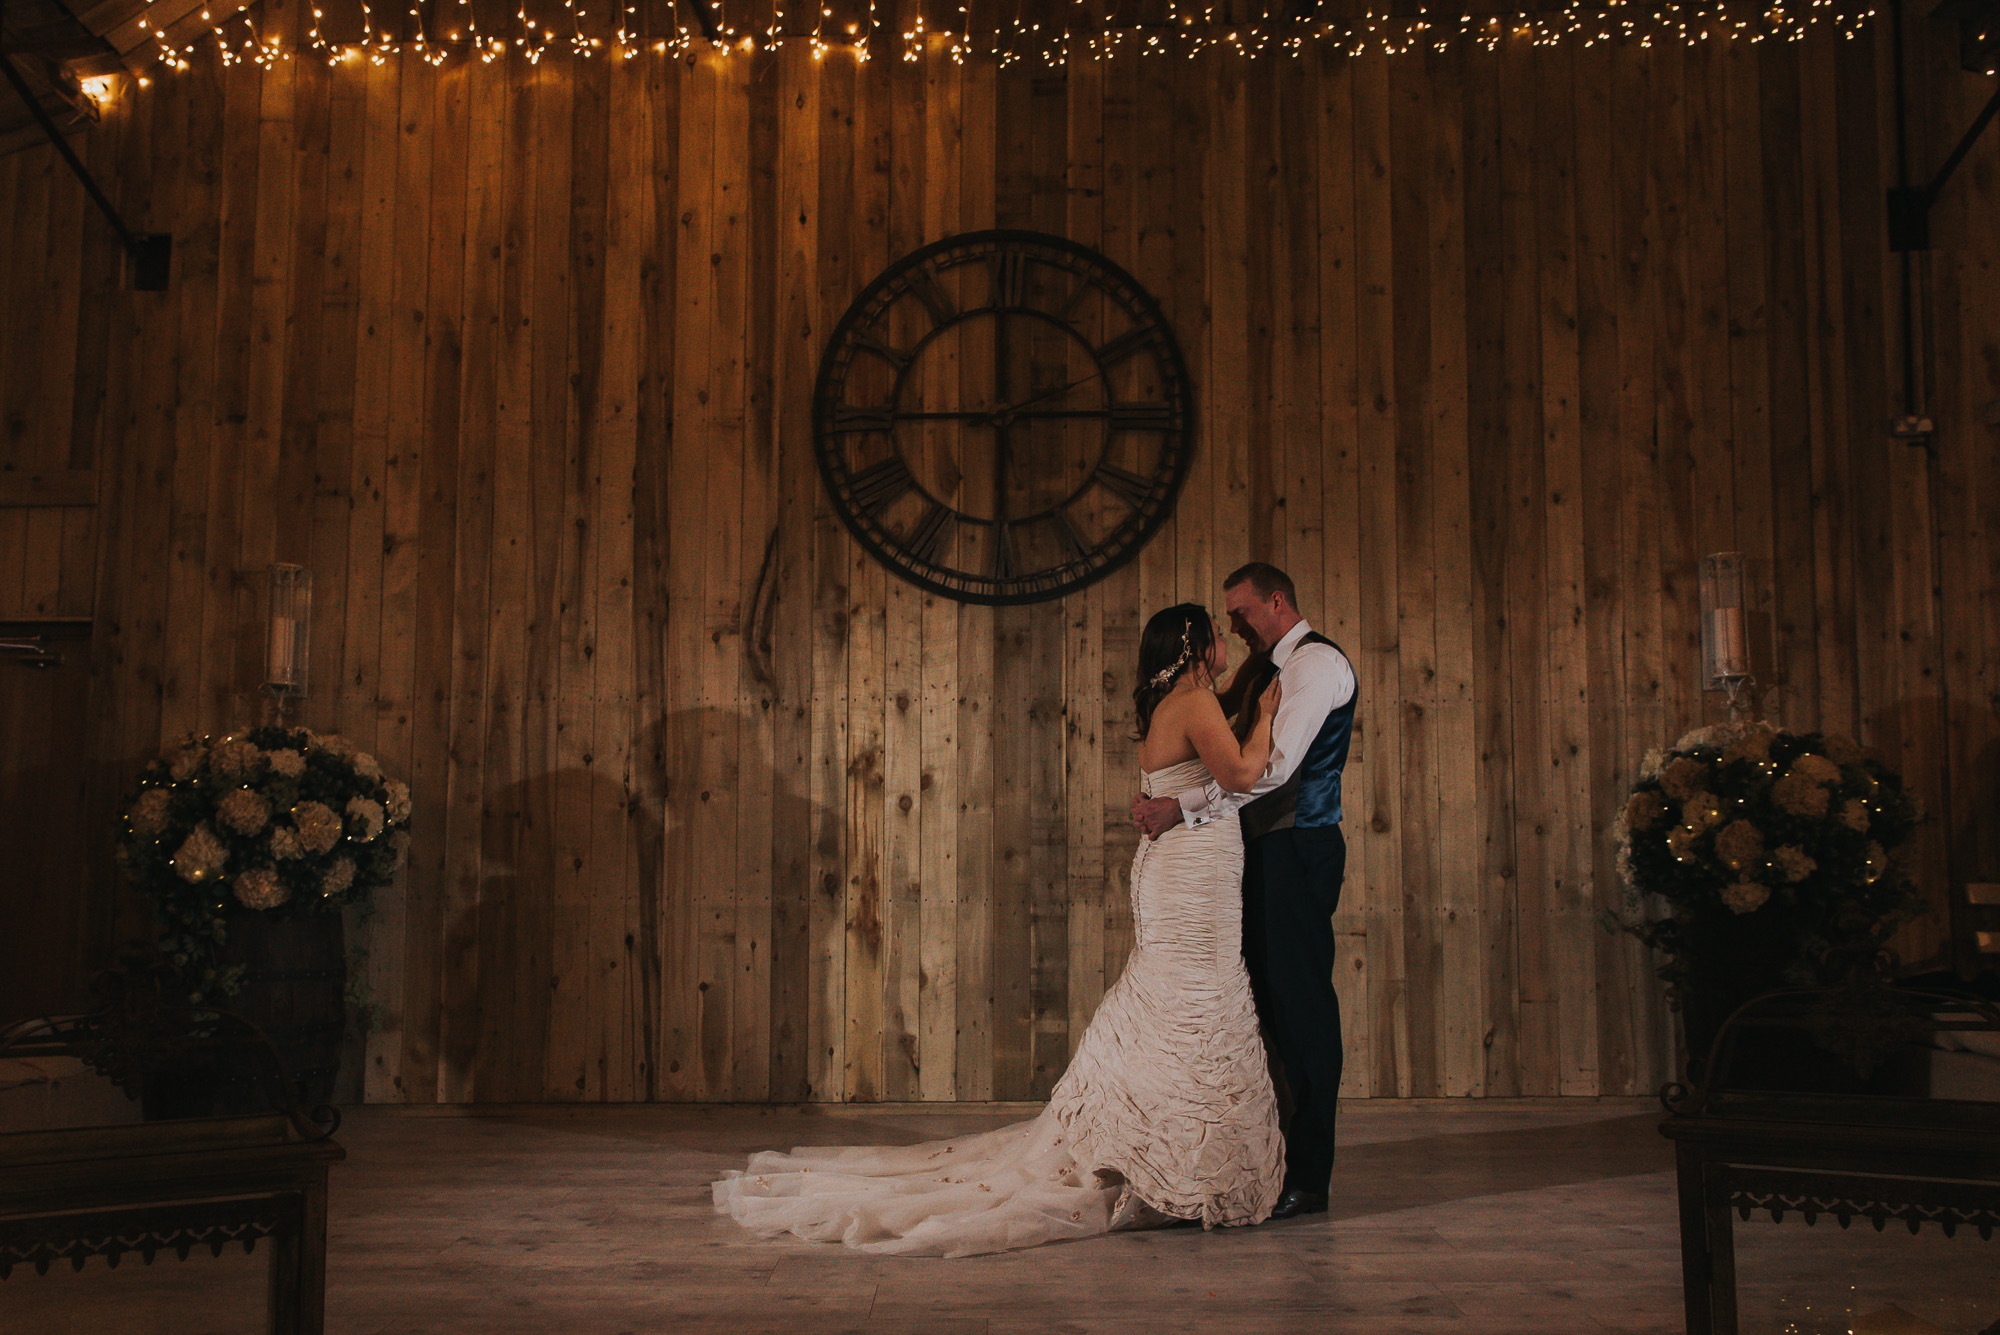 the bride and grooms first dance on their rustic wedding day at Alcumlow Hall Farm